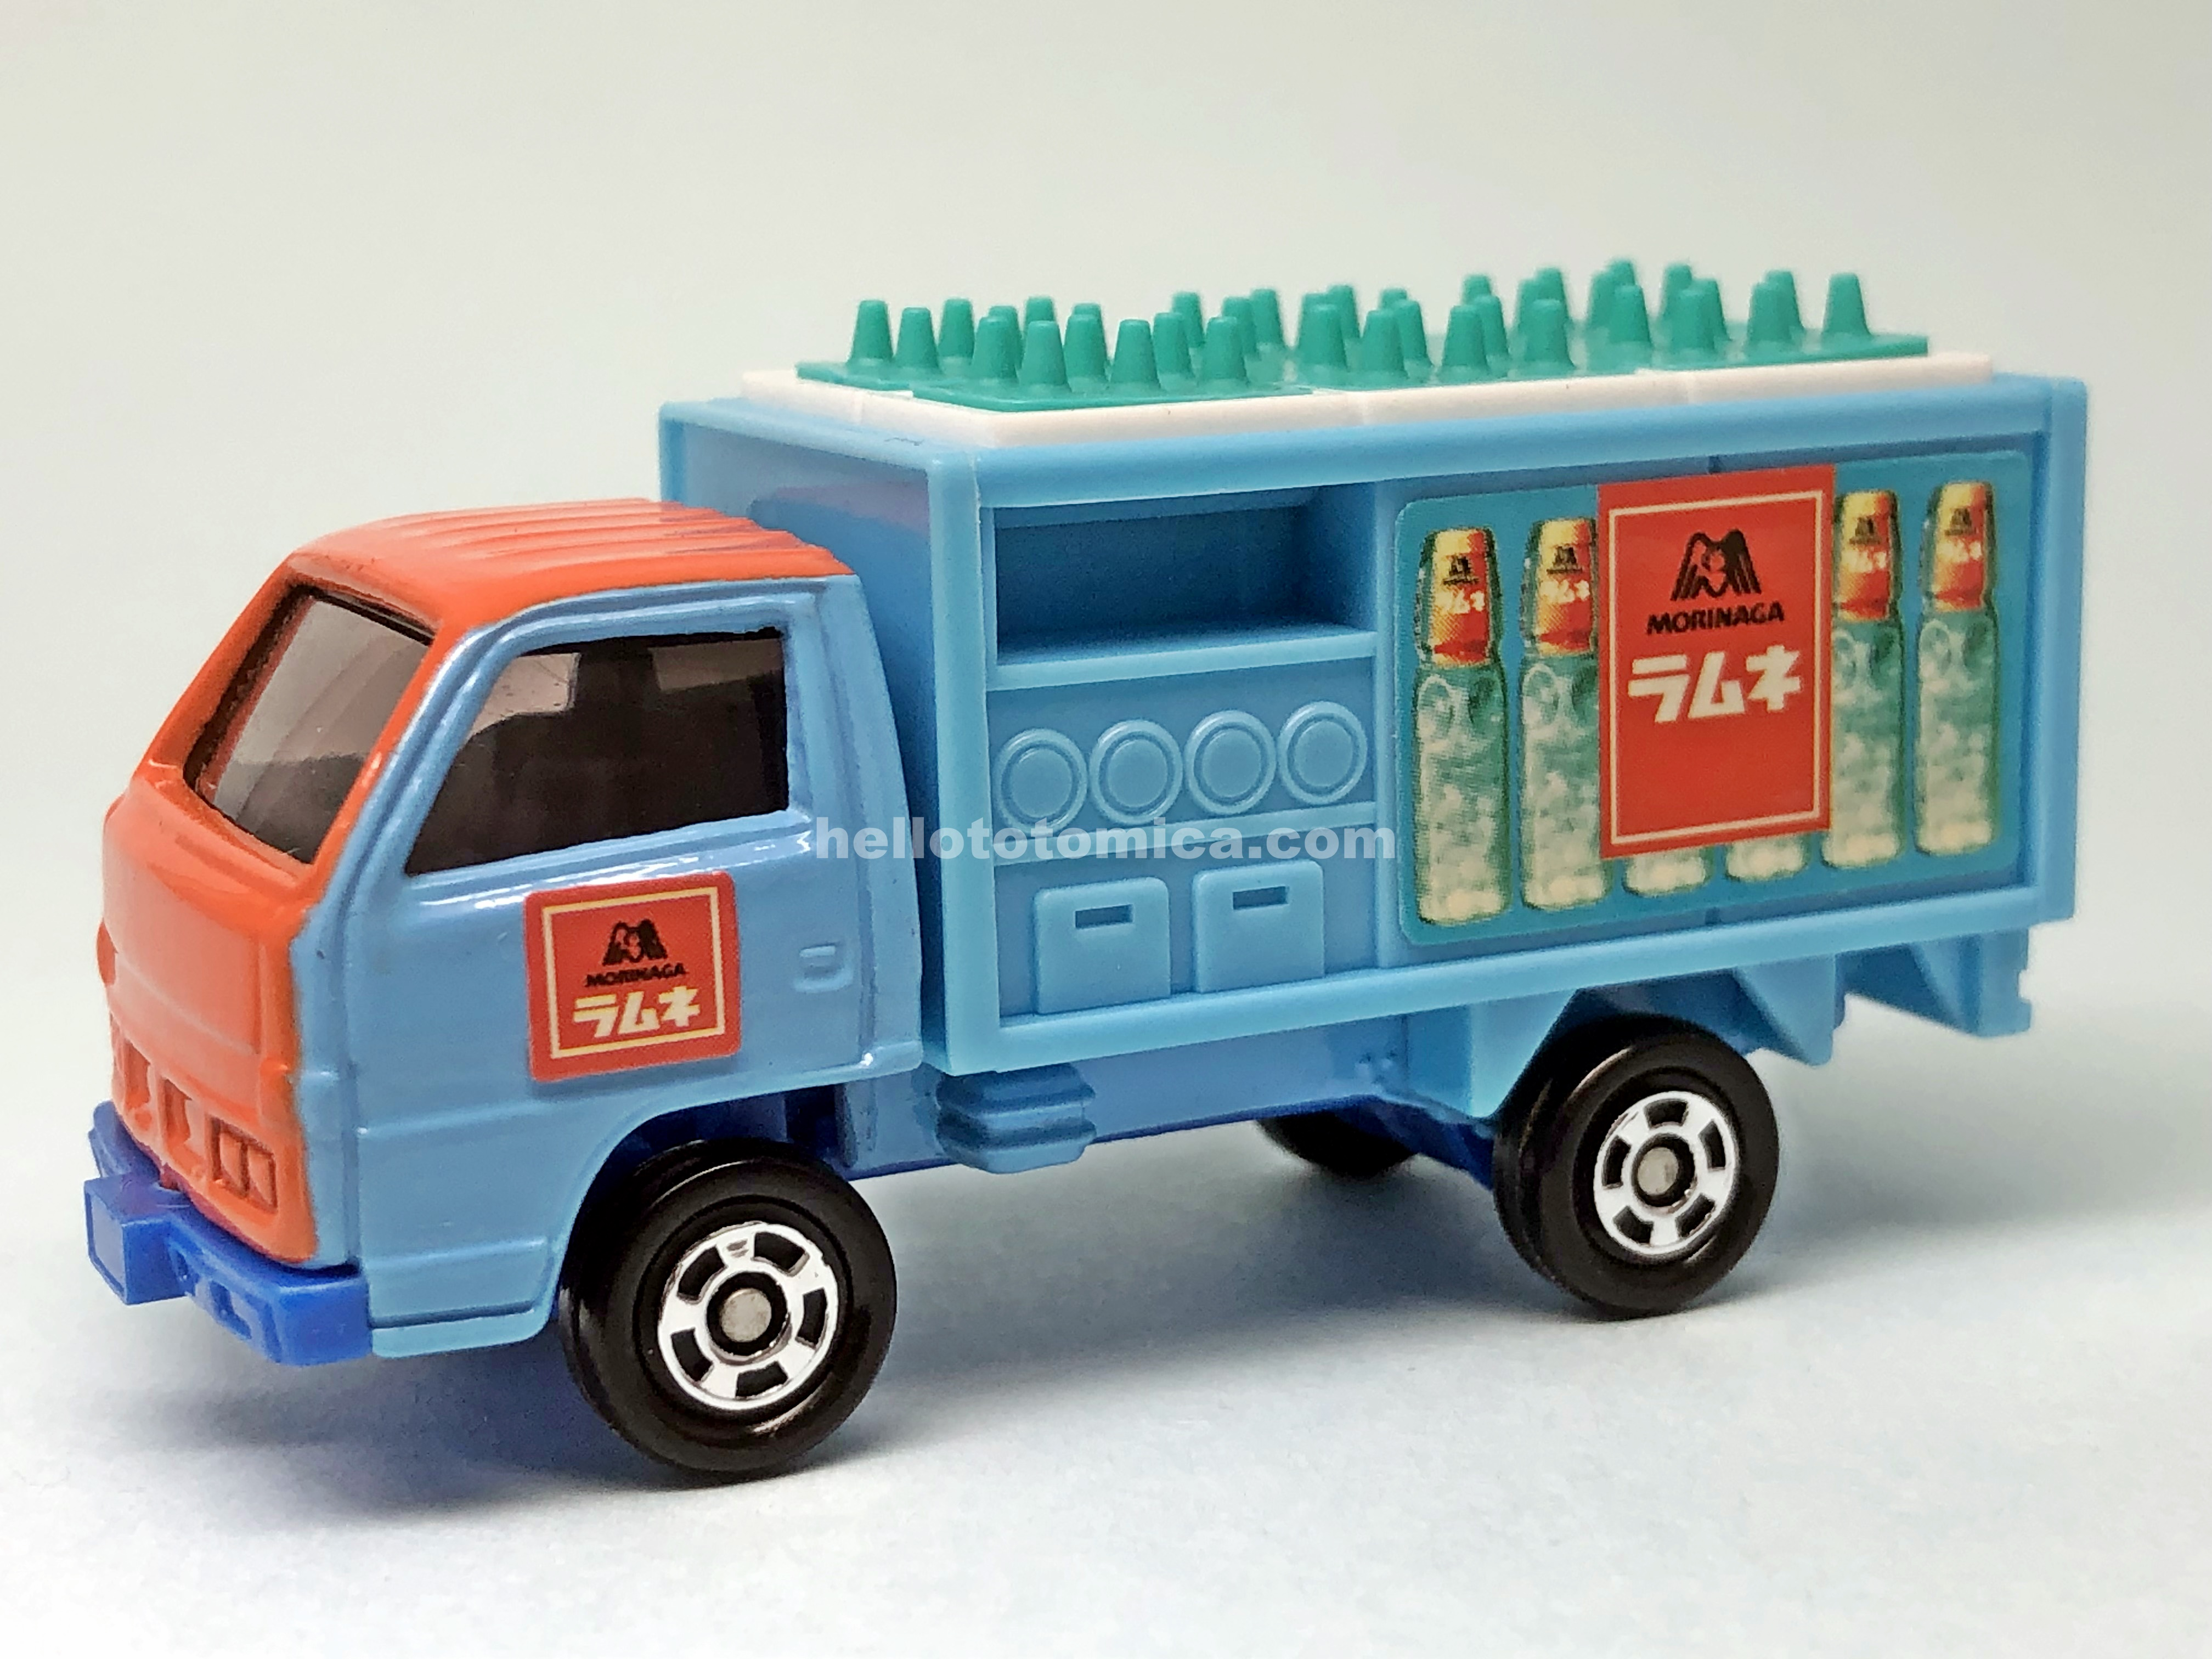 105-3 ROUTE TRUCK